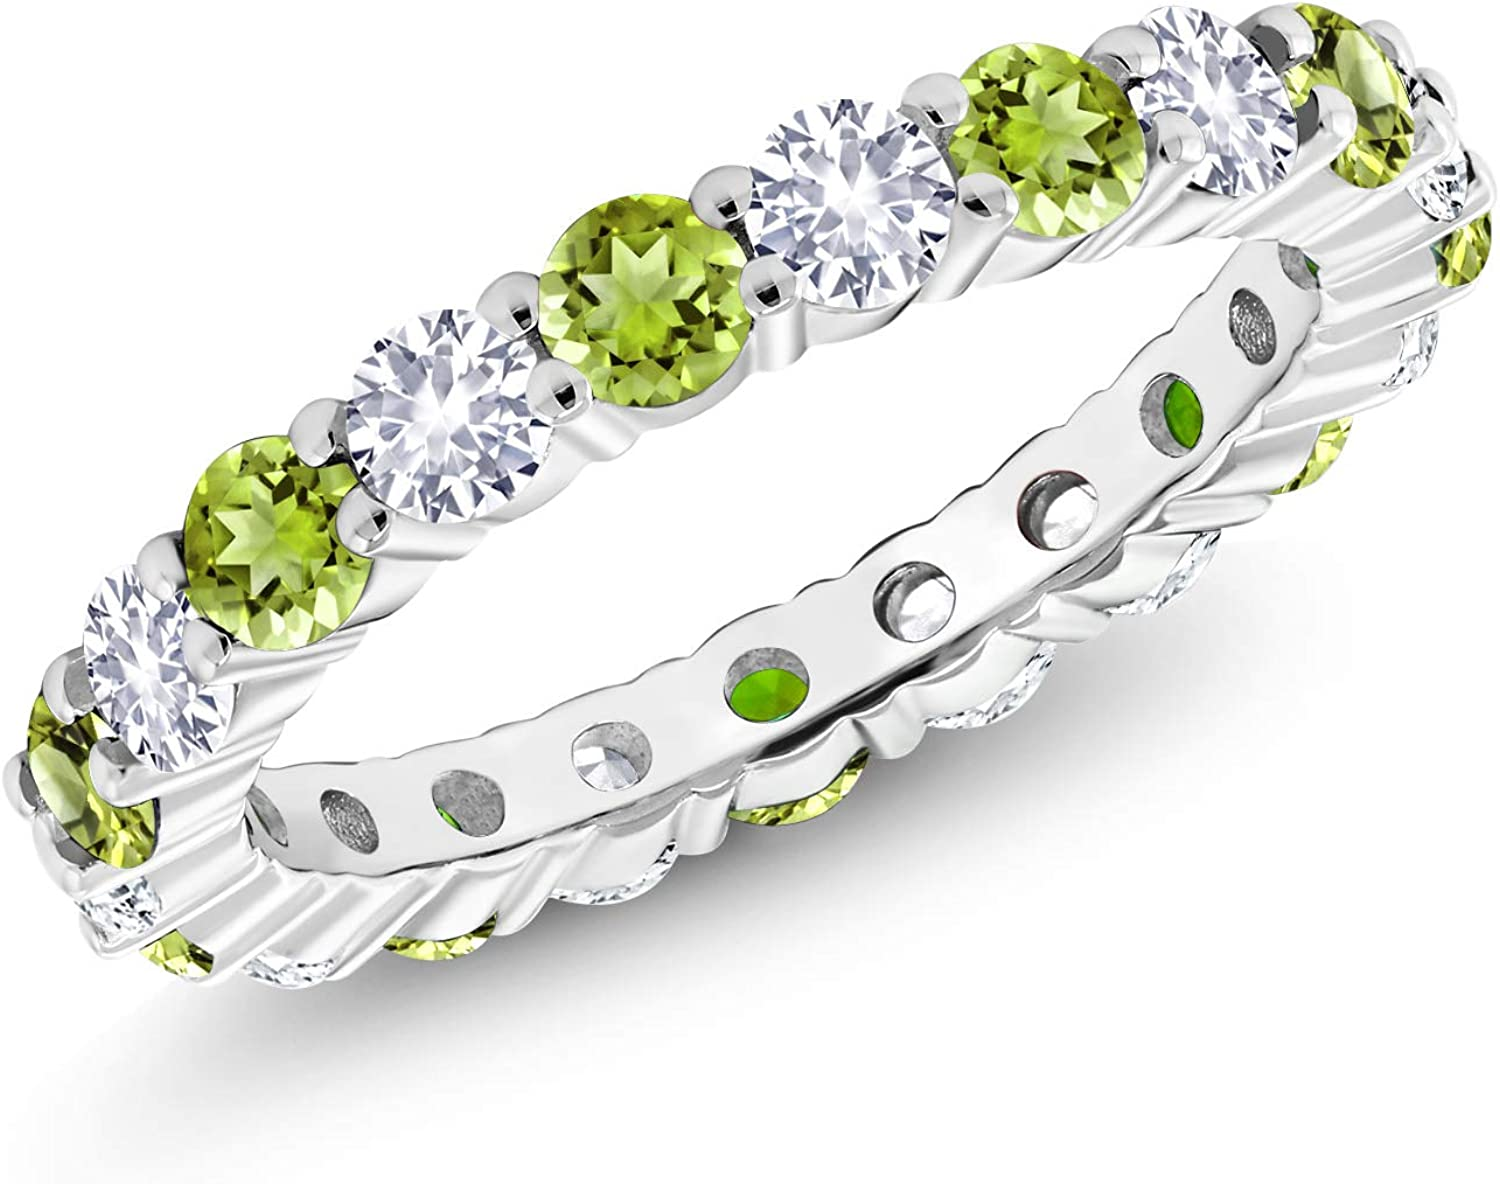 Gem Max 85% OFF Stone Popular products King 1.20 Ct Round Peridot Sap White Green and Created